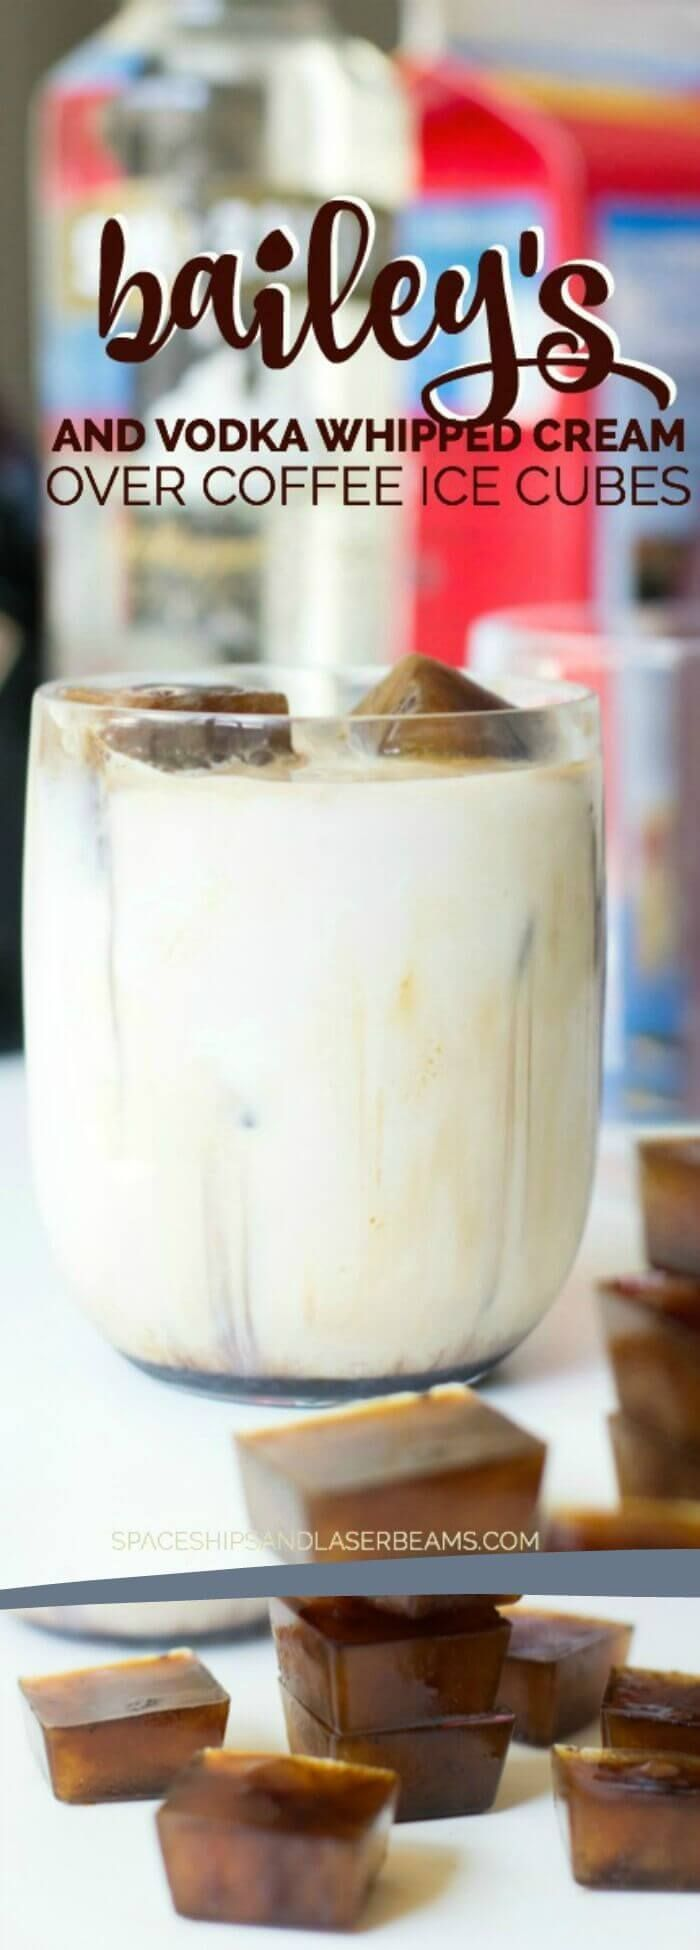 Bailey's & Vodka Whipped Cream with Coffee Ice Cubes via @spaceshipslb